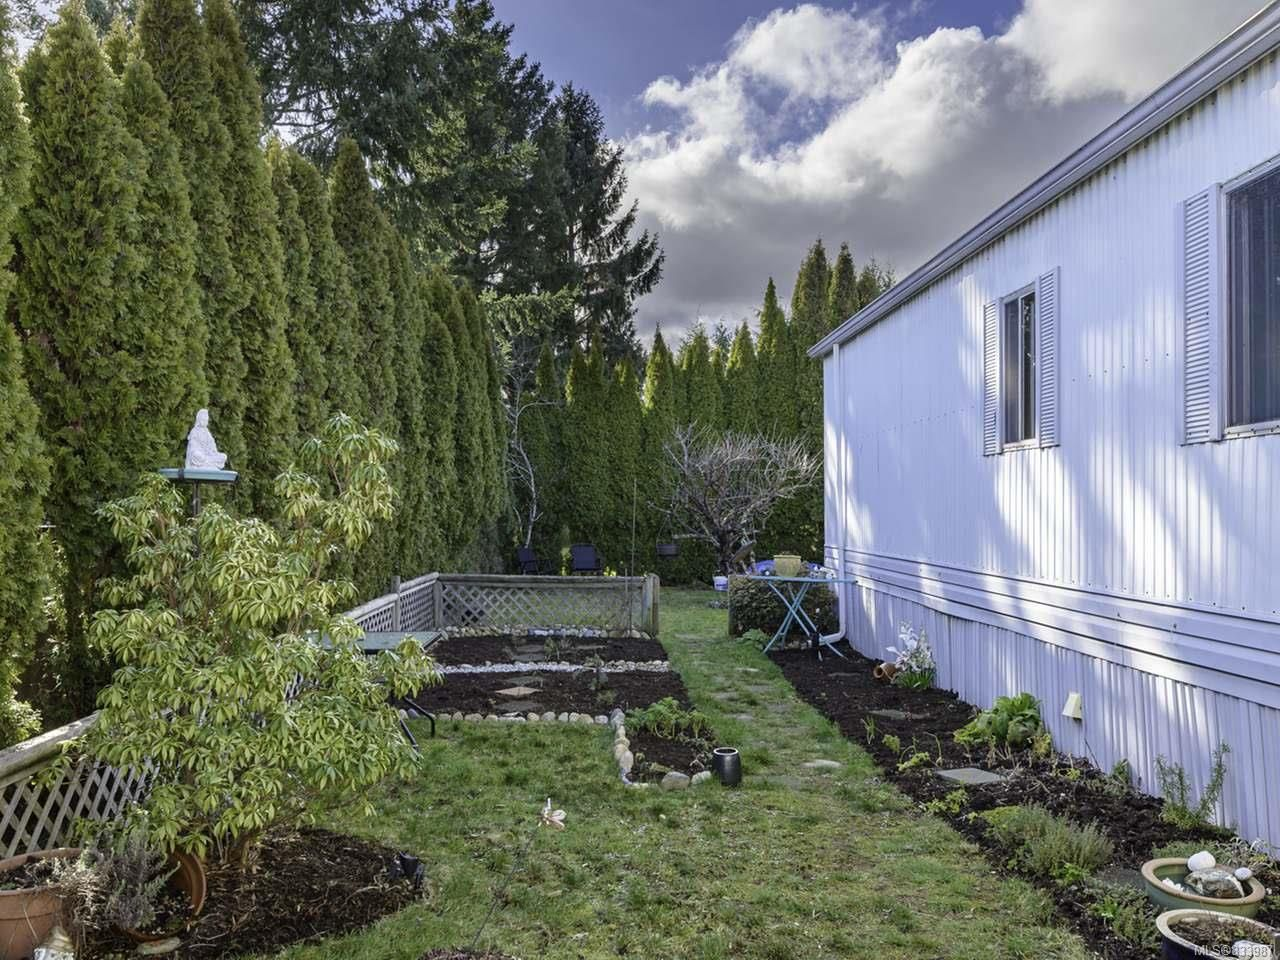 Photo 31: Photos: 64 390 Cowichan Ave in COURTENAY: CV Courtenay East Manufactured Home for sale (Comox Valley)  : MLS®# 833987